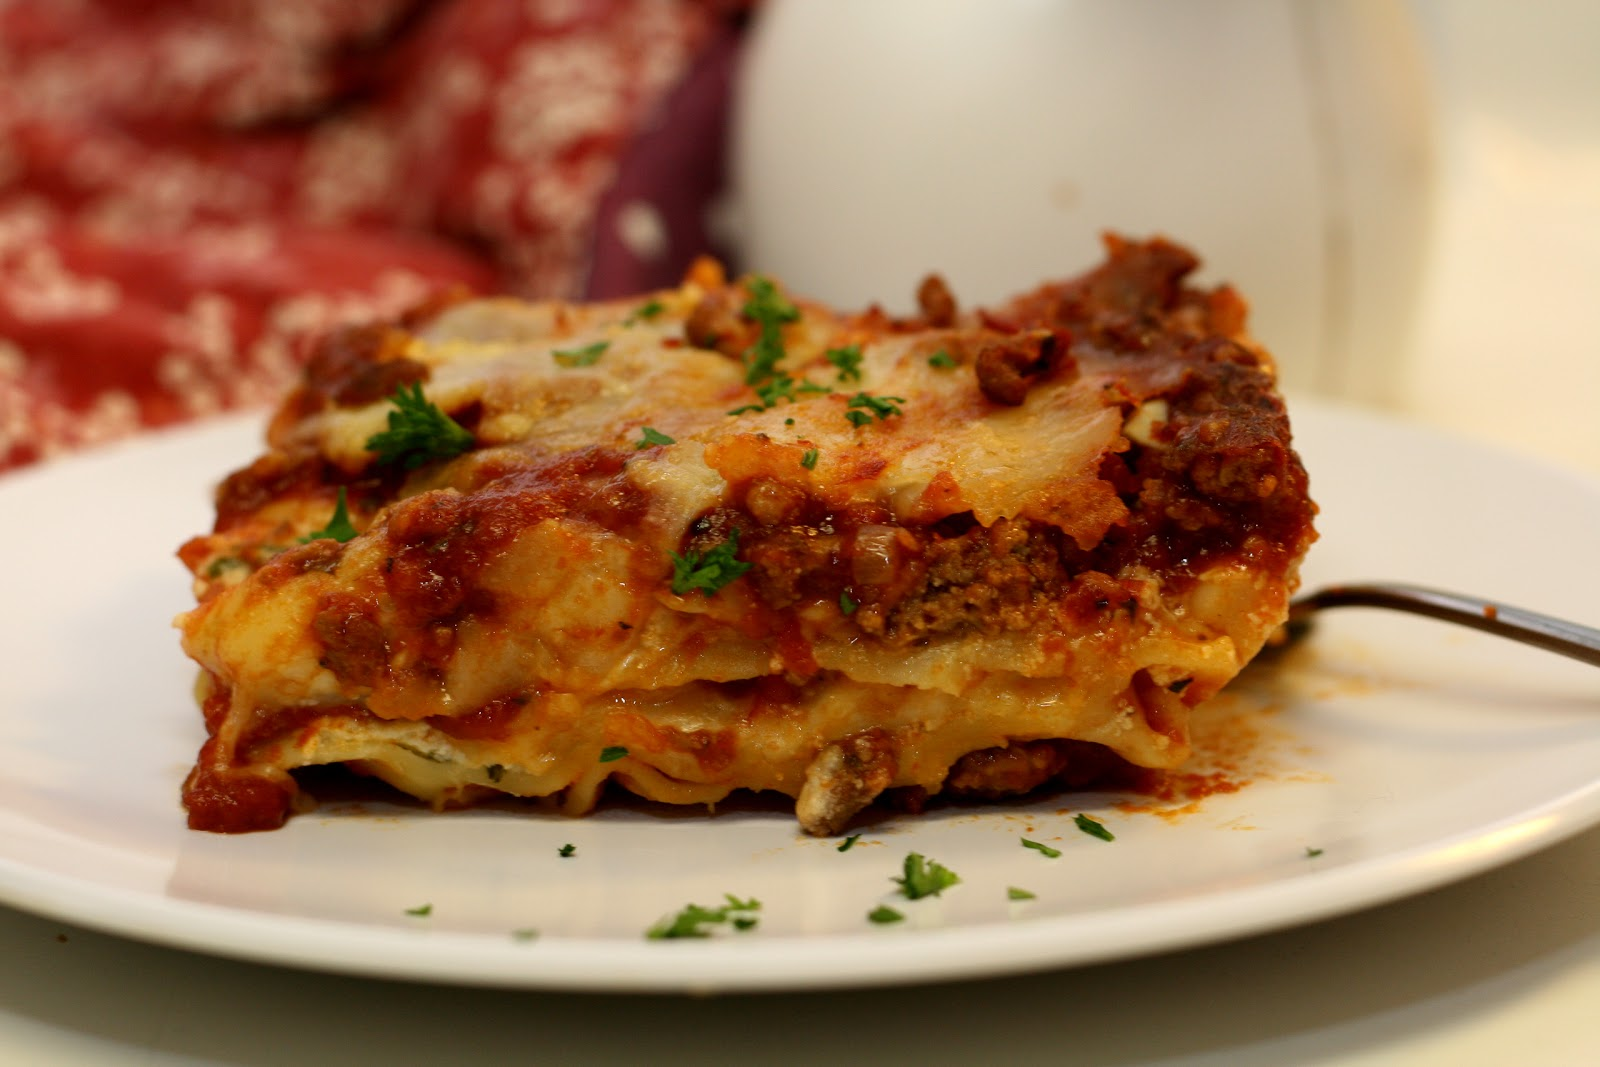 The World's Best Lasagna – What Is Cooking Now?